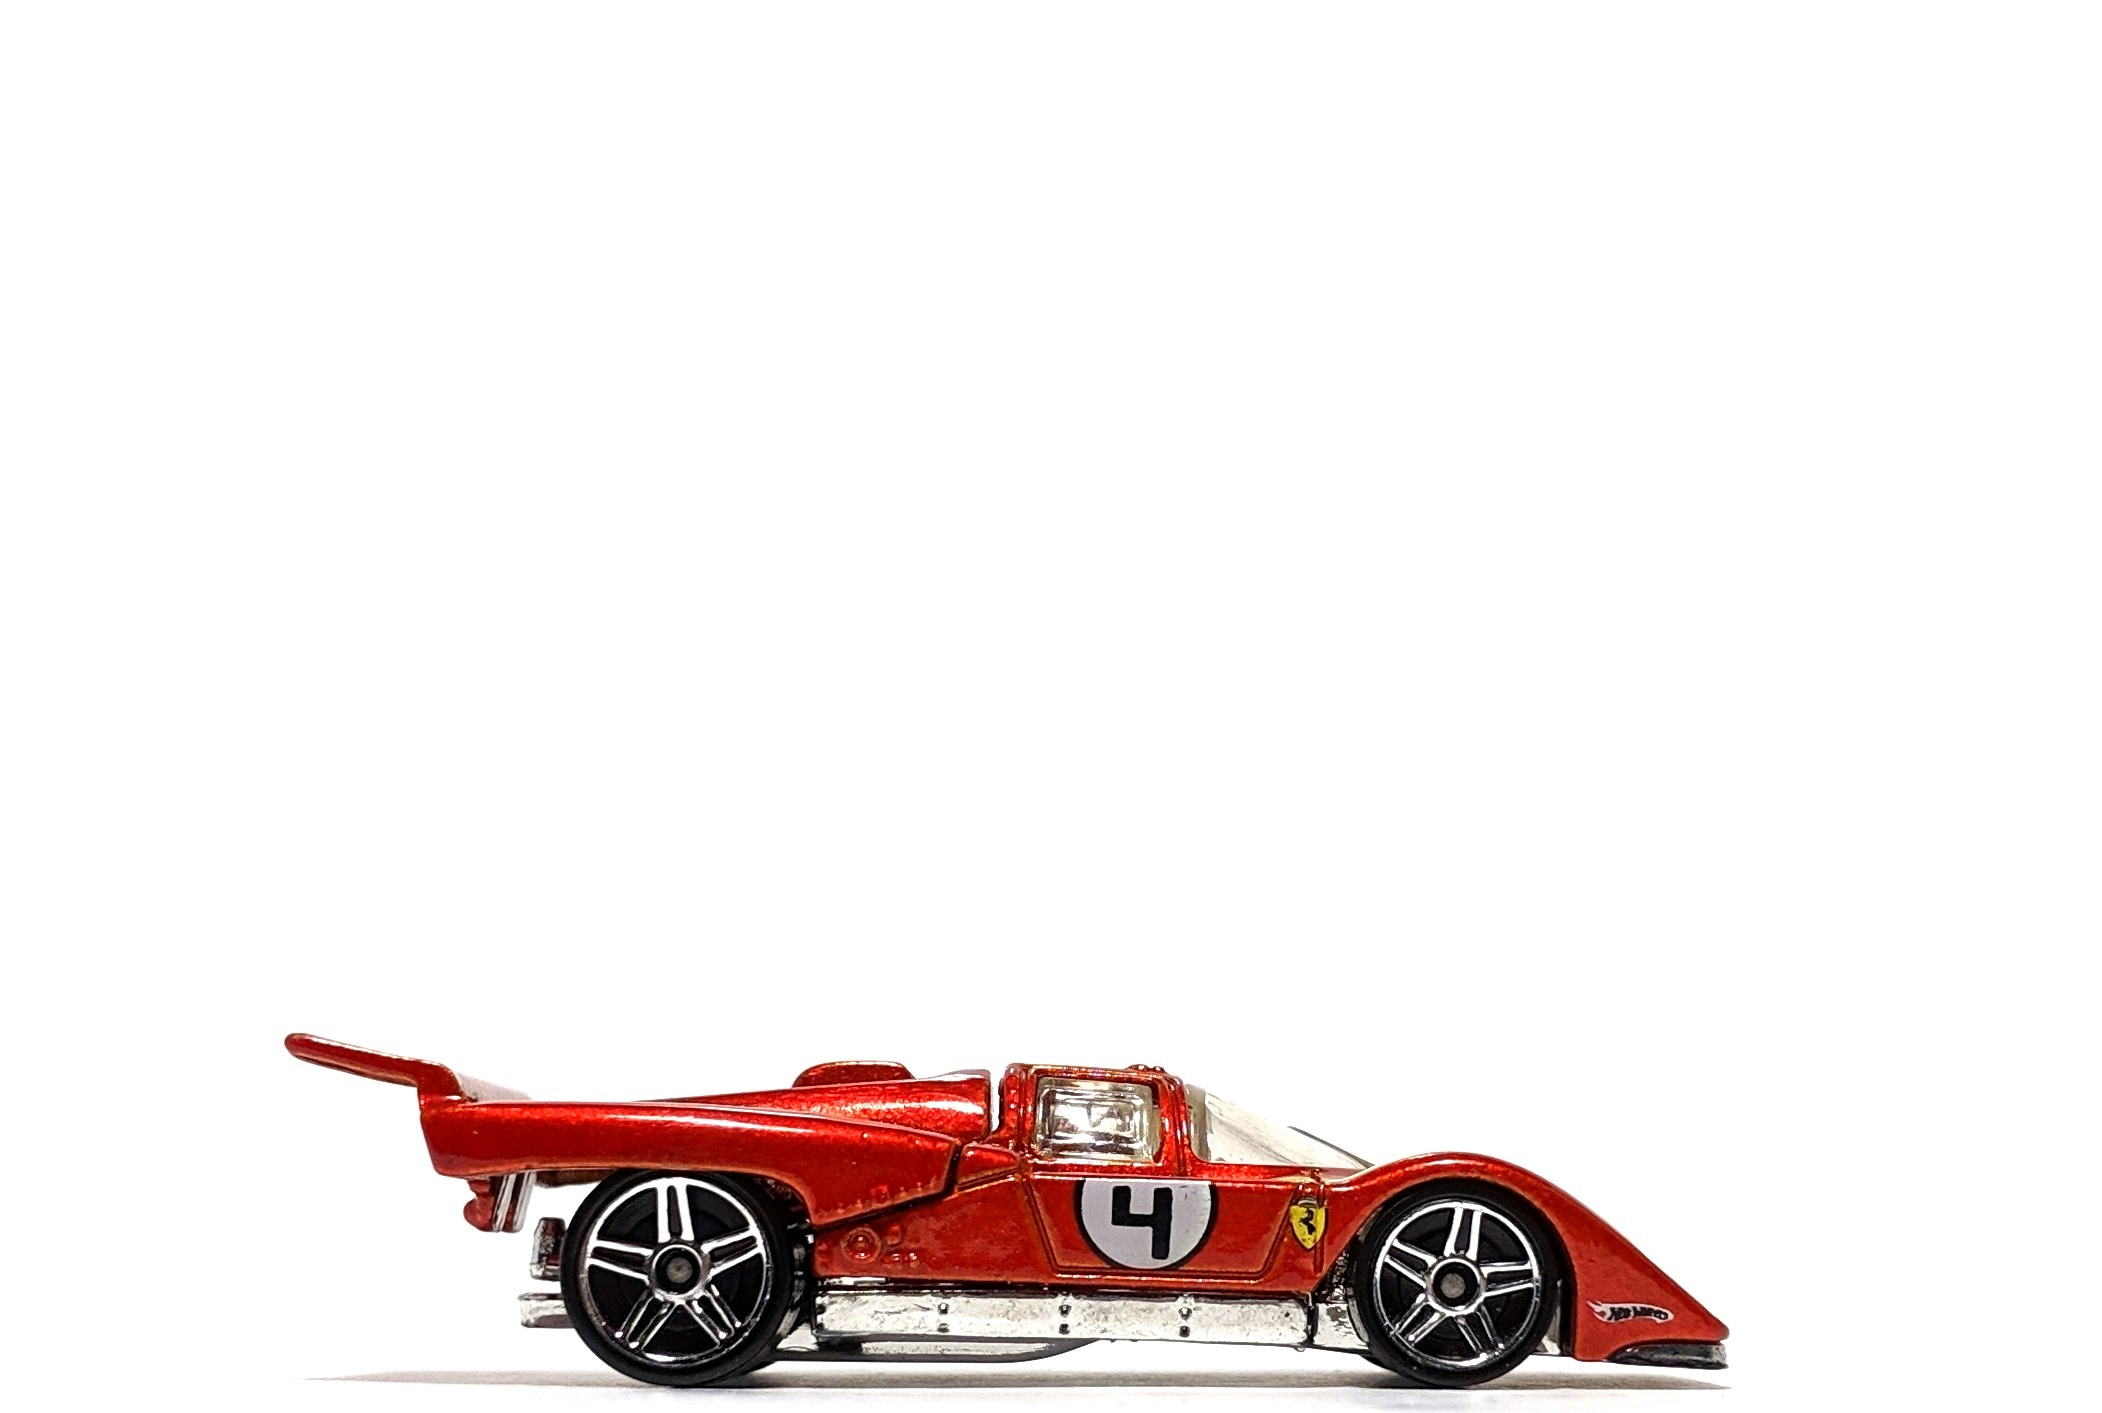 Ferrari 512M, by Hot Wheels